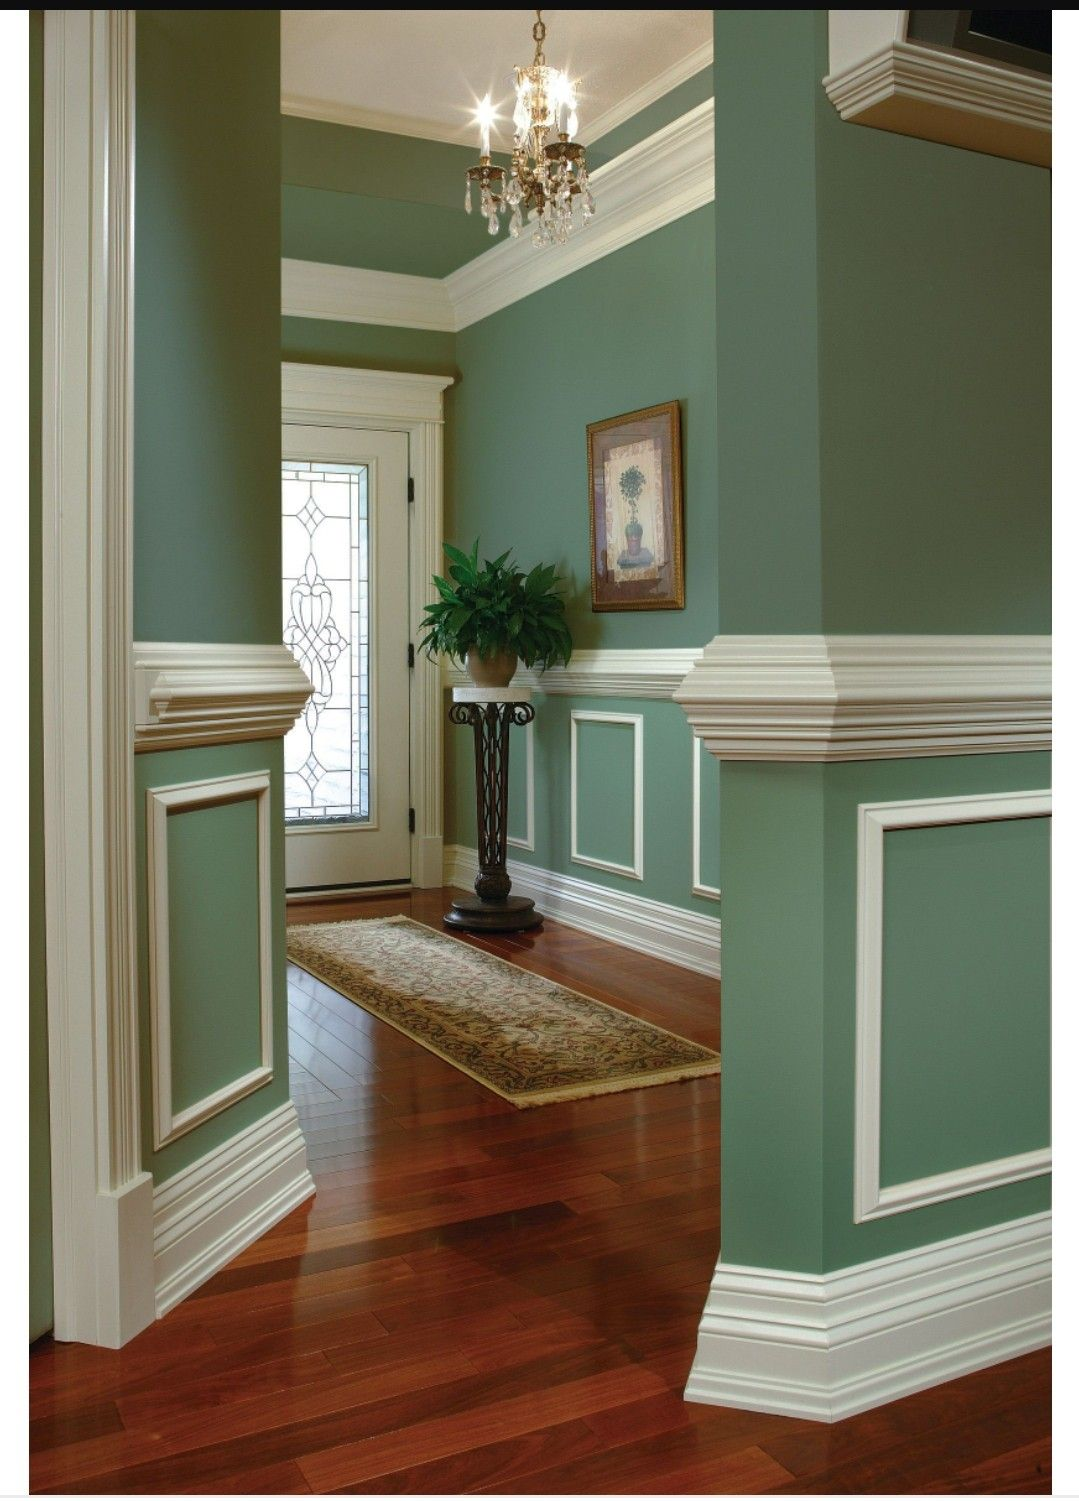 Pin By Iris T Baker On Home Decor Ideas House Design Home Wall Molding Design